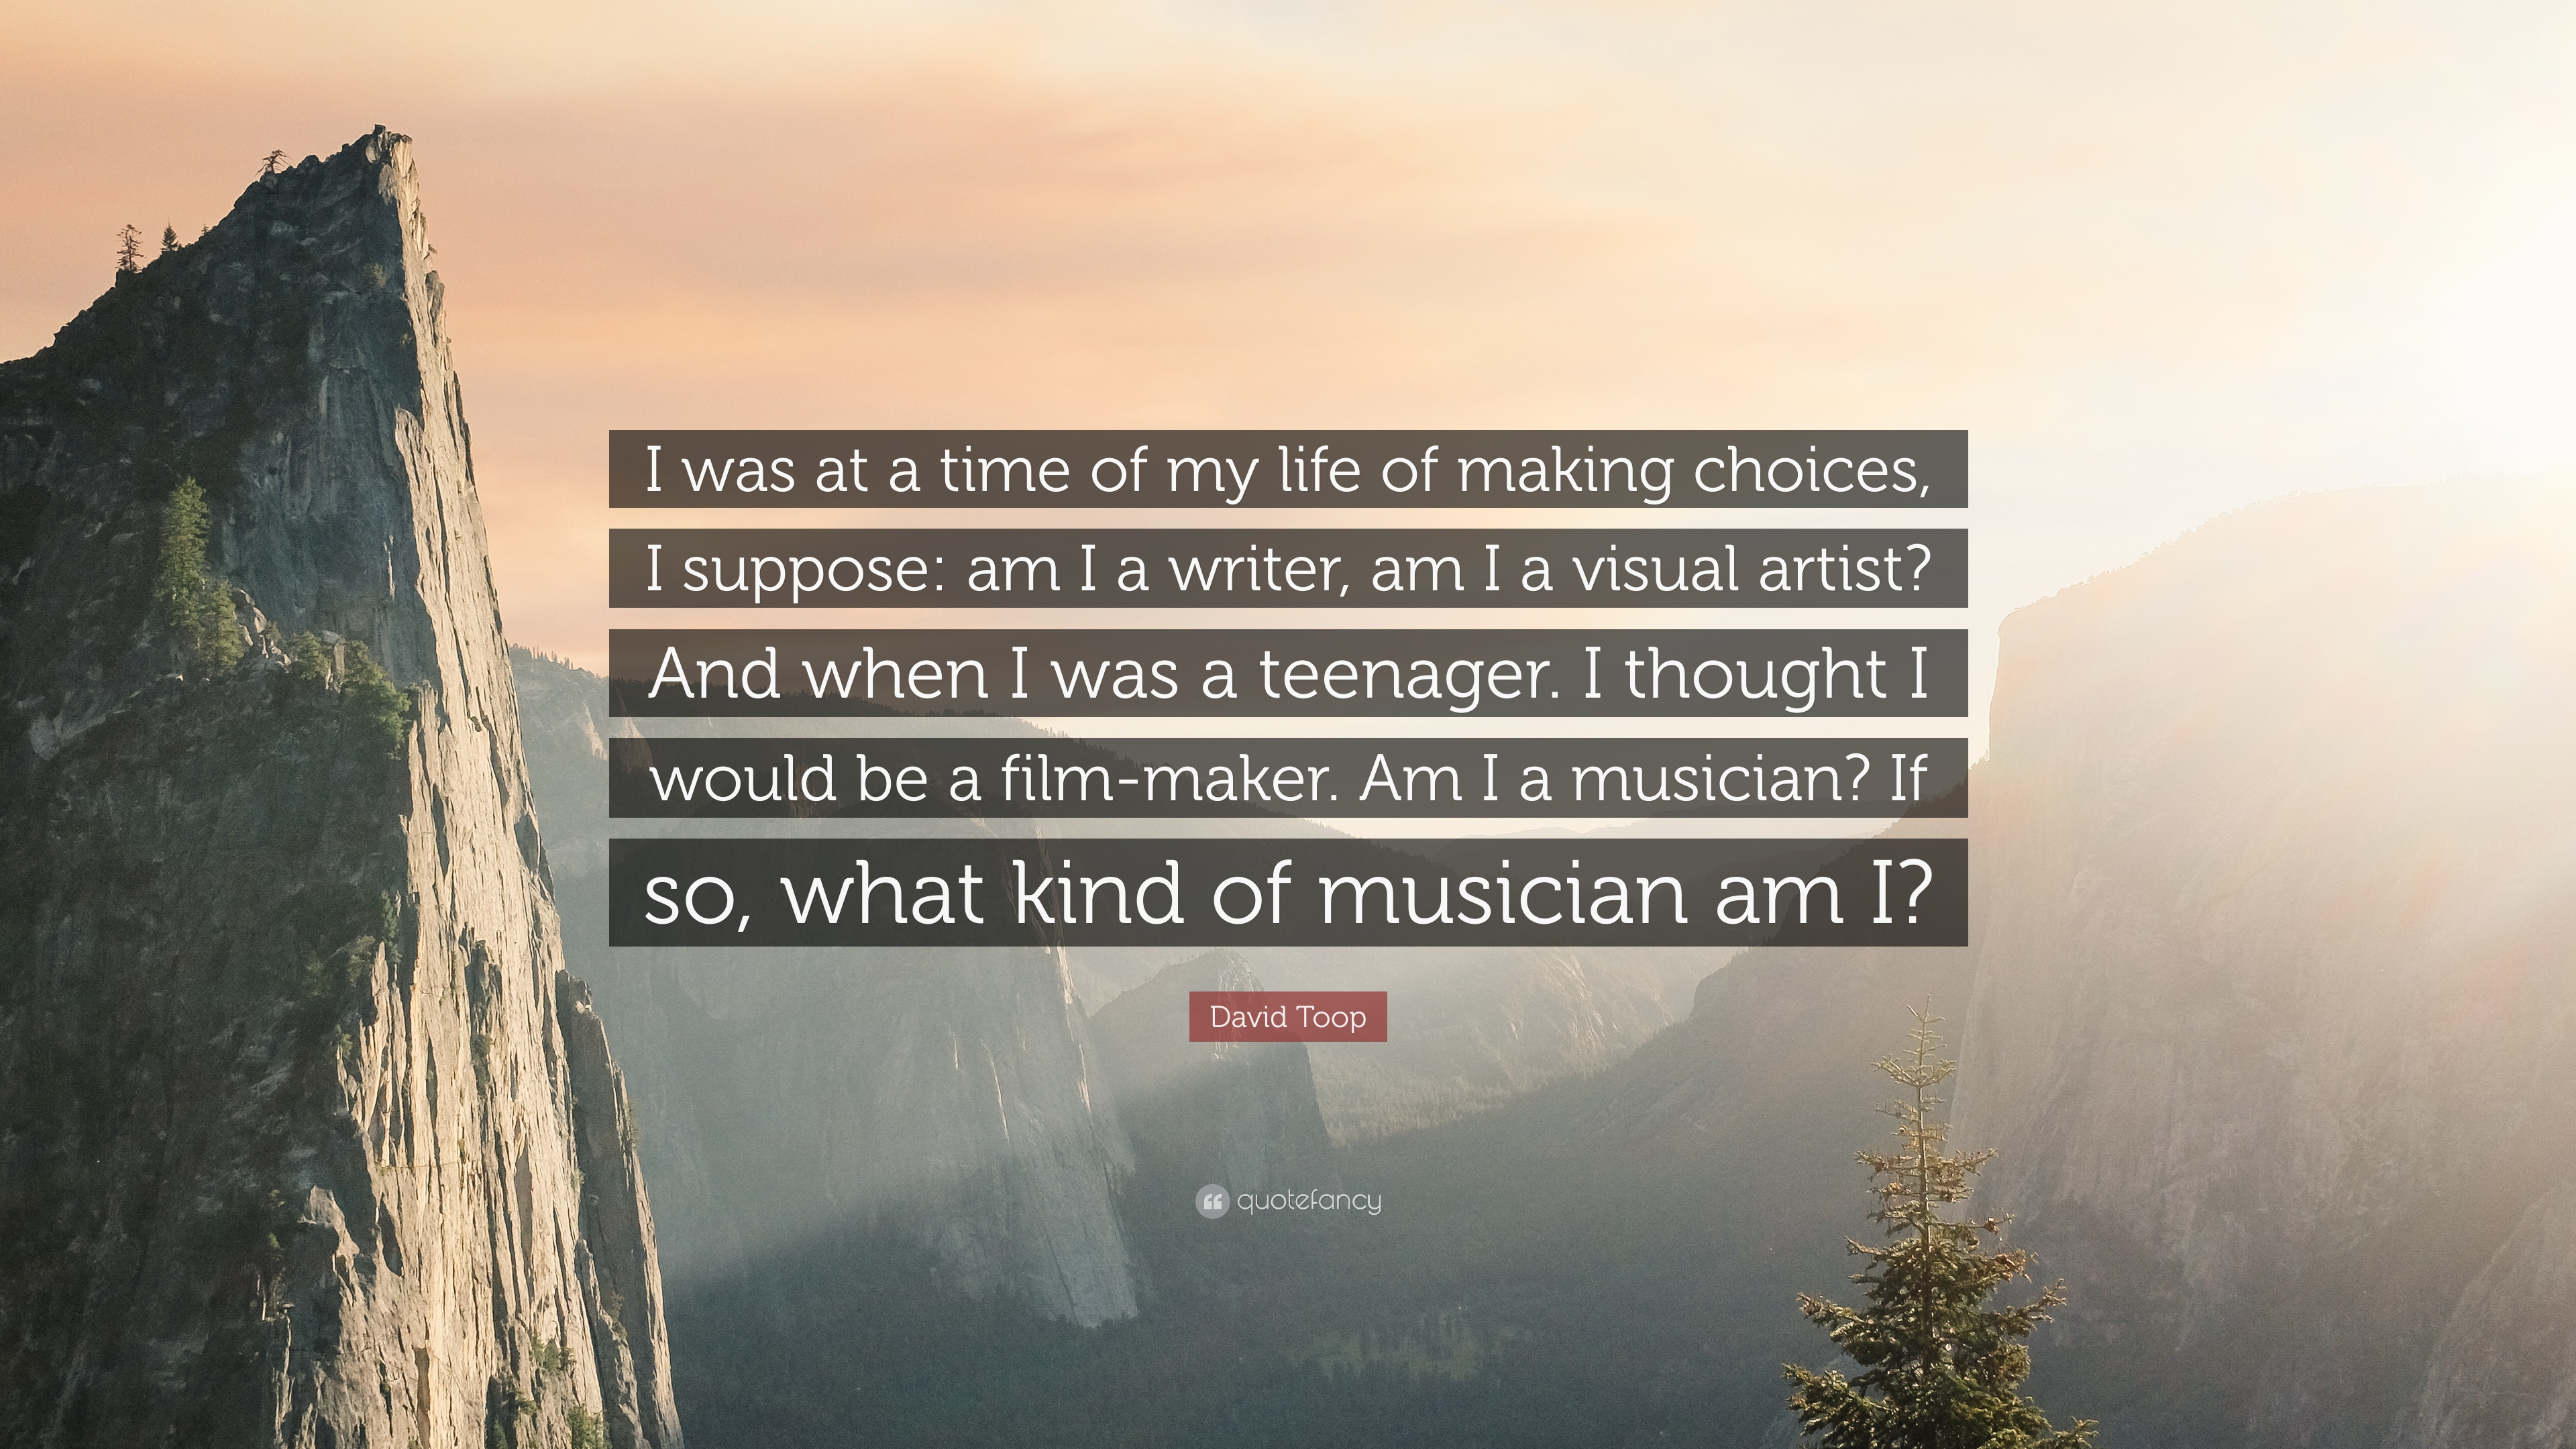 Fastest David Toop Quote i Was At Time Of My Life Of Making Choices Kamila Gornia David Toop Quote i Was At Time Of My Life Of Making Choices